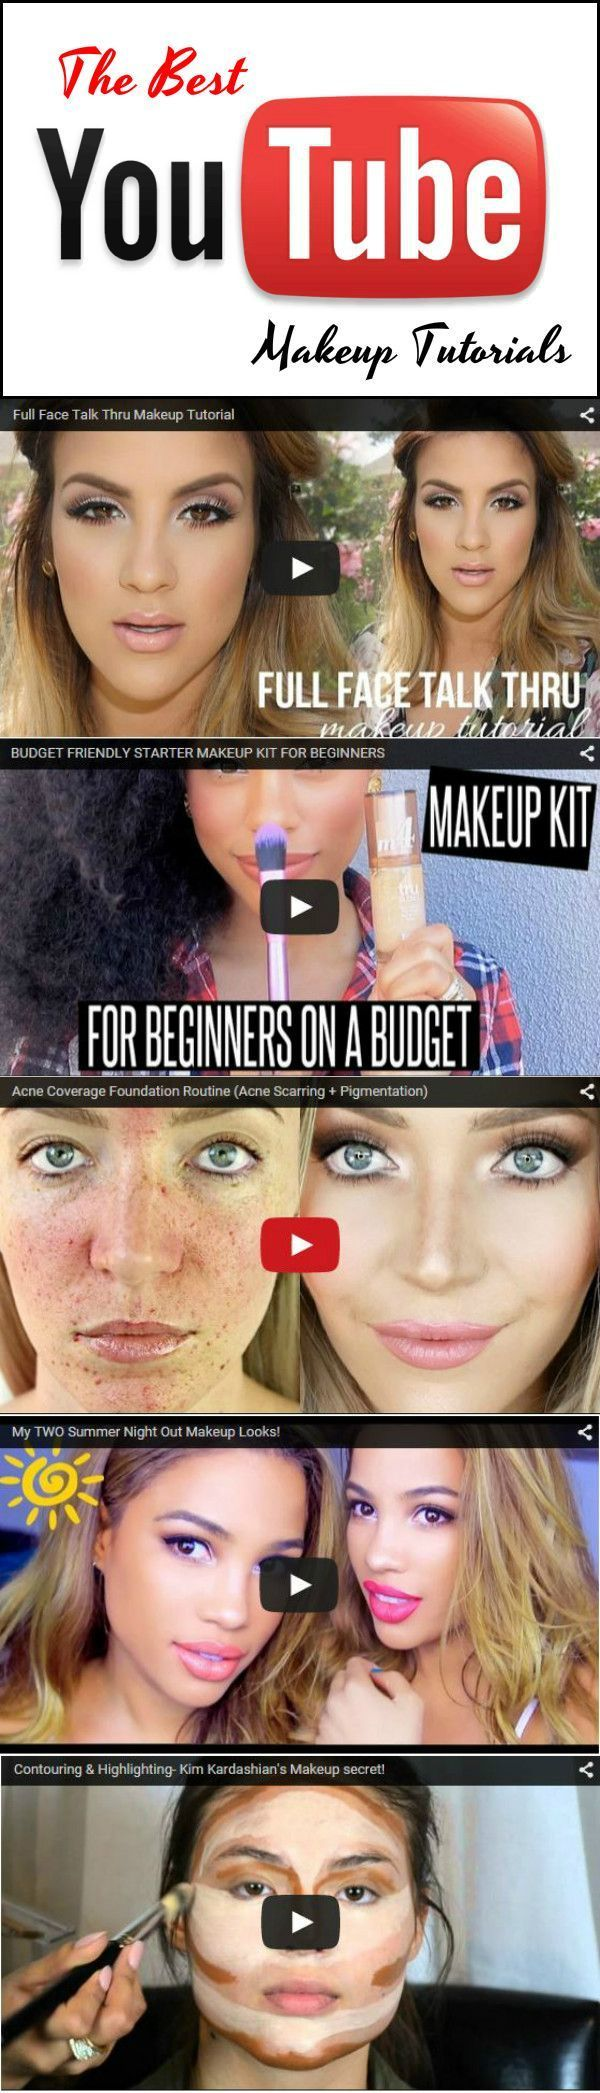 Makeup Artist Tricks For A Flawless Look at http://makeuptutorials.com/youtube-makeup-tutorials-part-1/